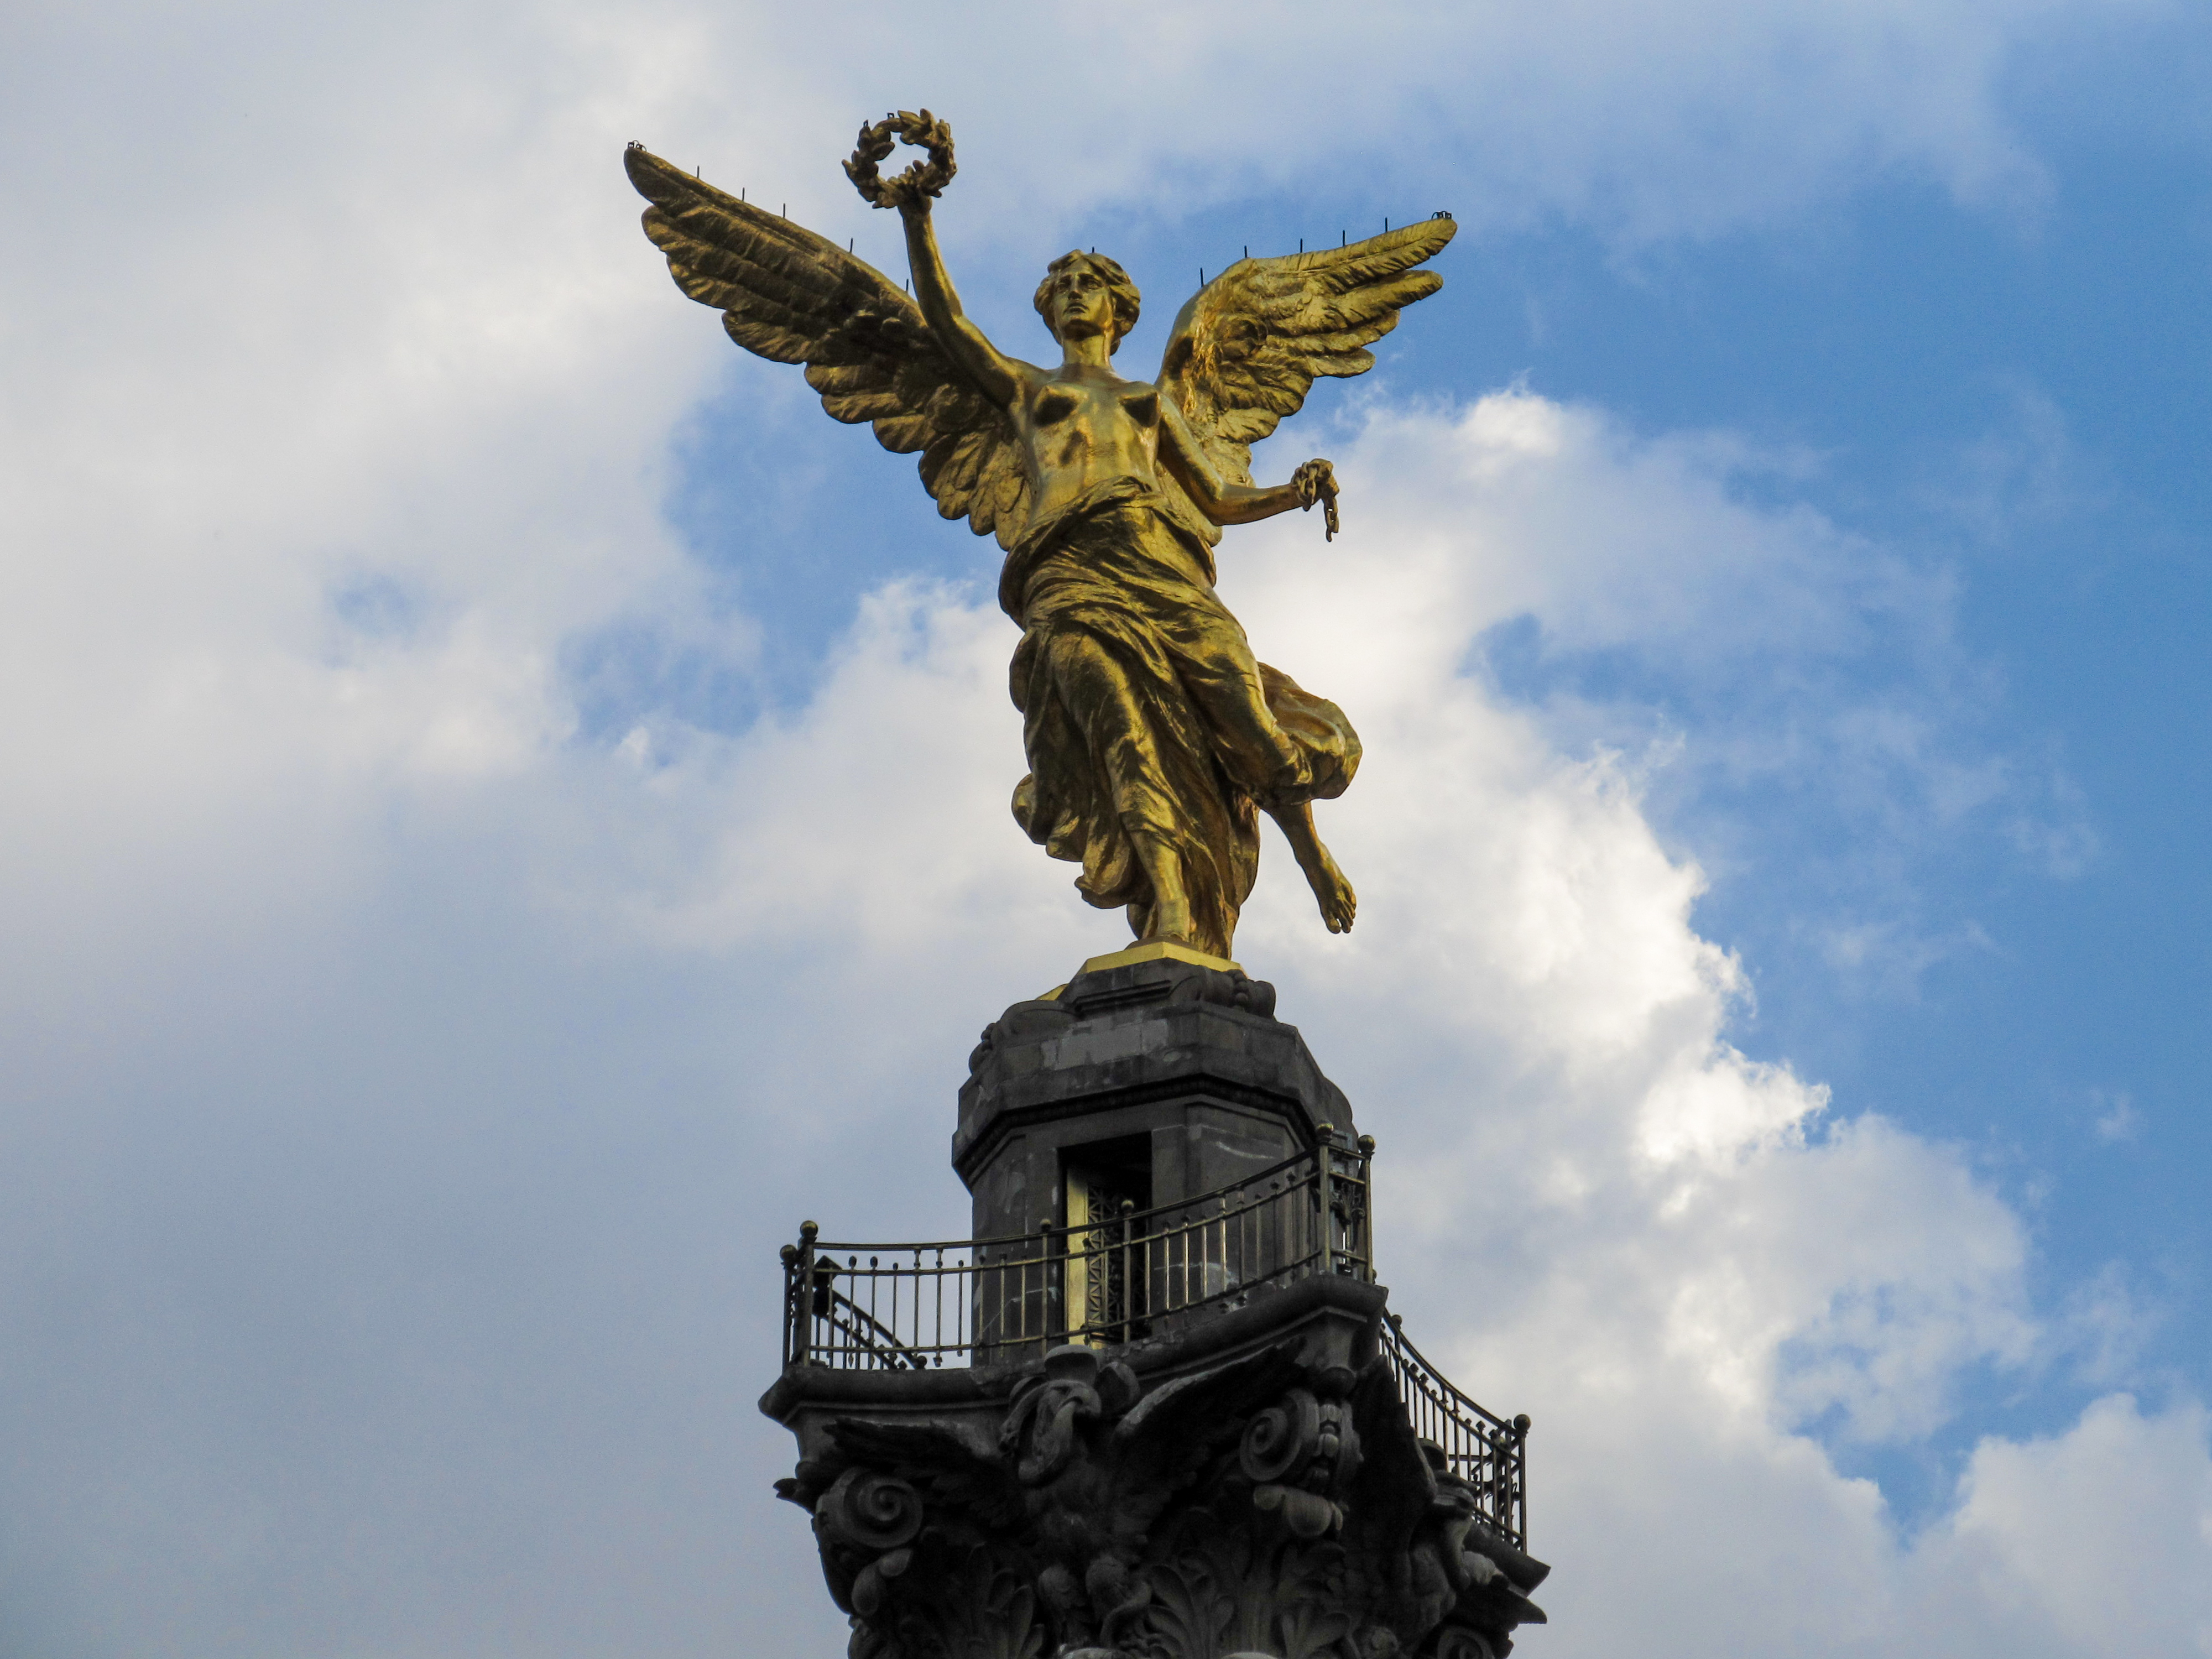 Archivo:Angel De La Independencia 2015.jpg